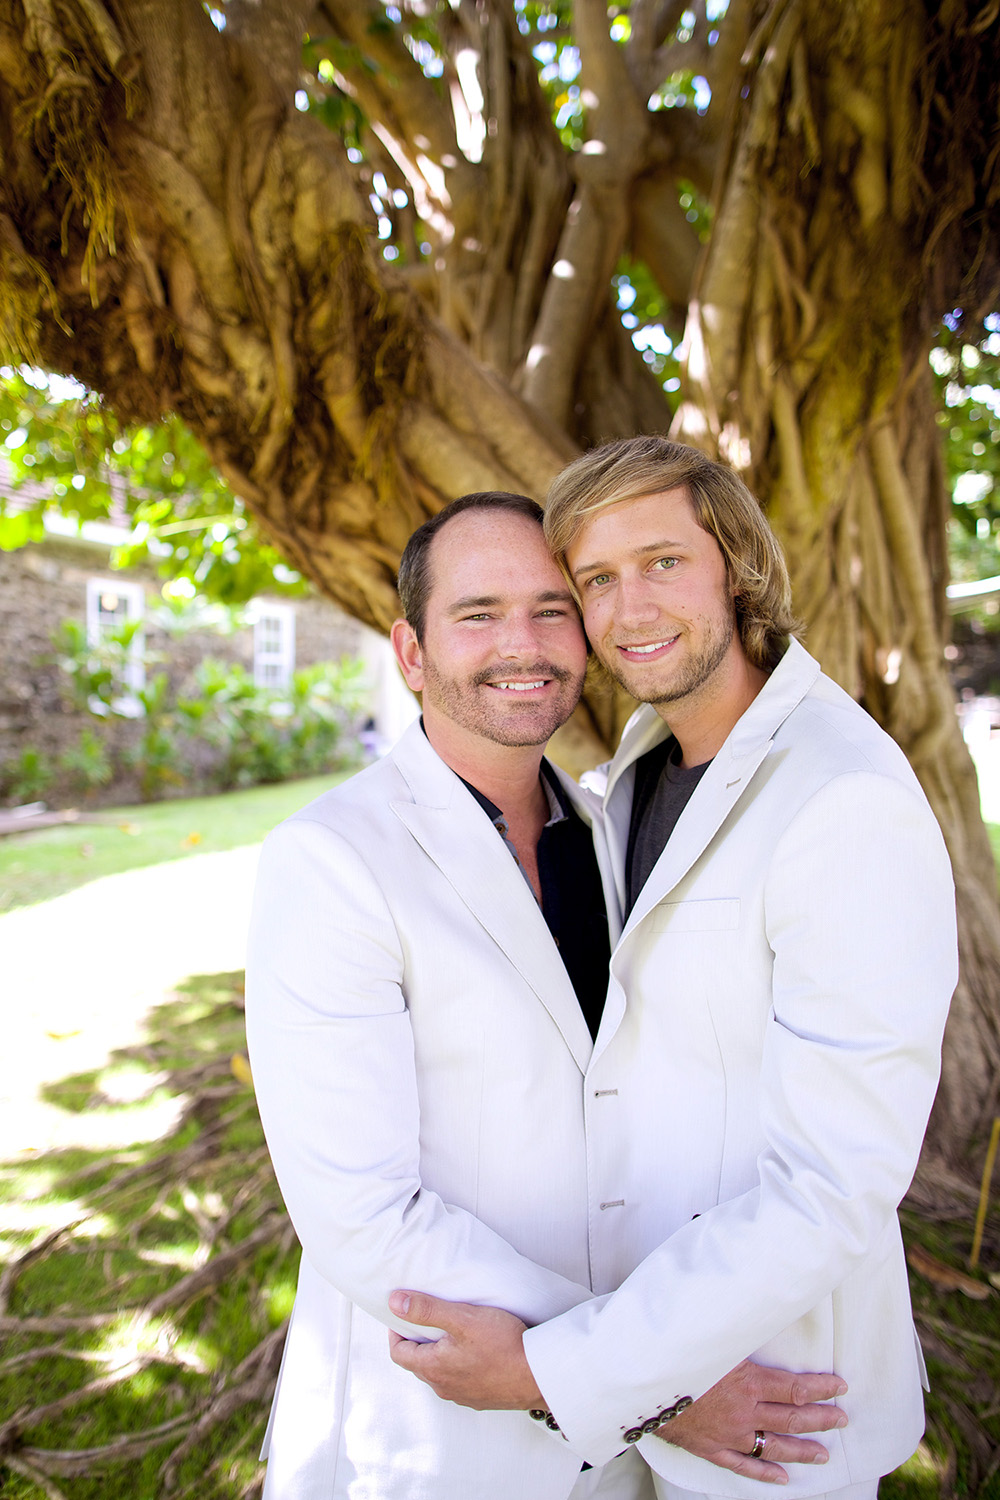 Stylish Maui grooms - Bliss Wedding Design and Anna Kim Photography